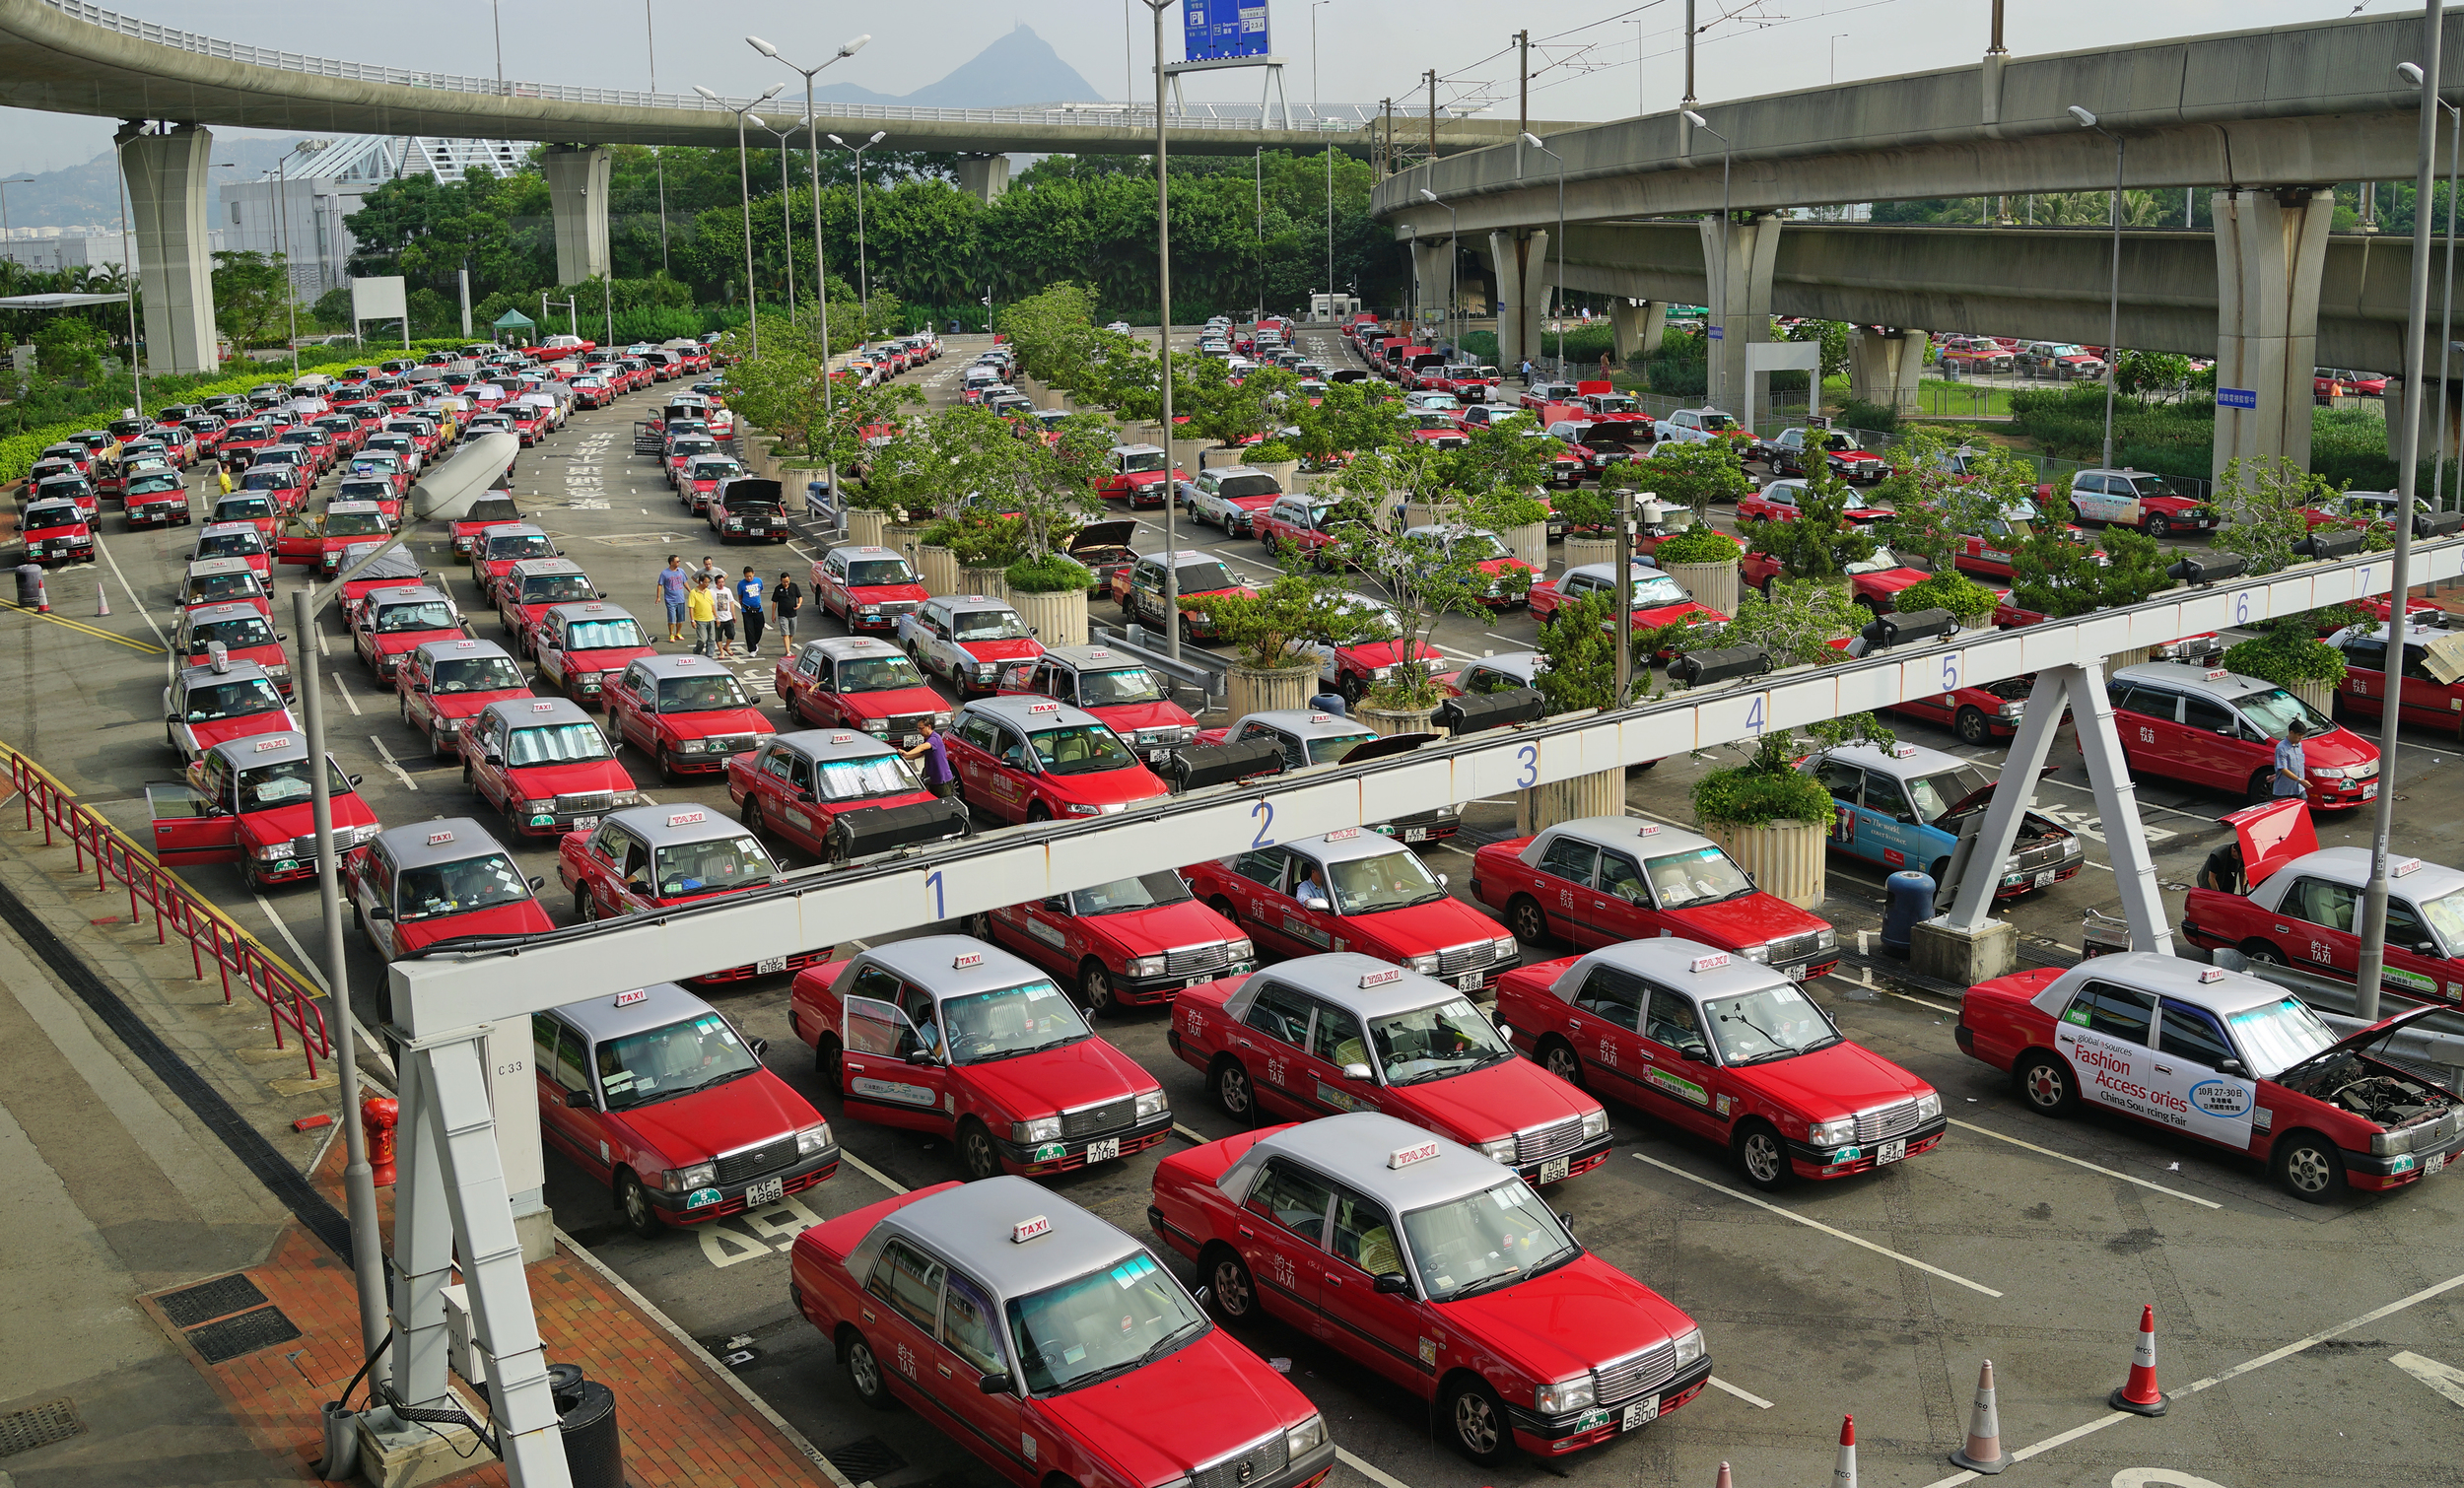 Hong Kong has over 18,500 taxi's most of them seem to be at the airport!